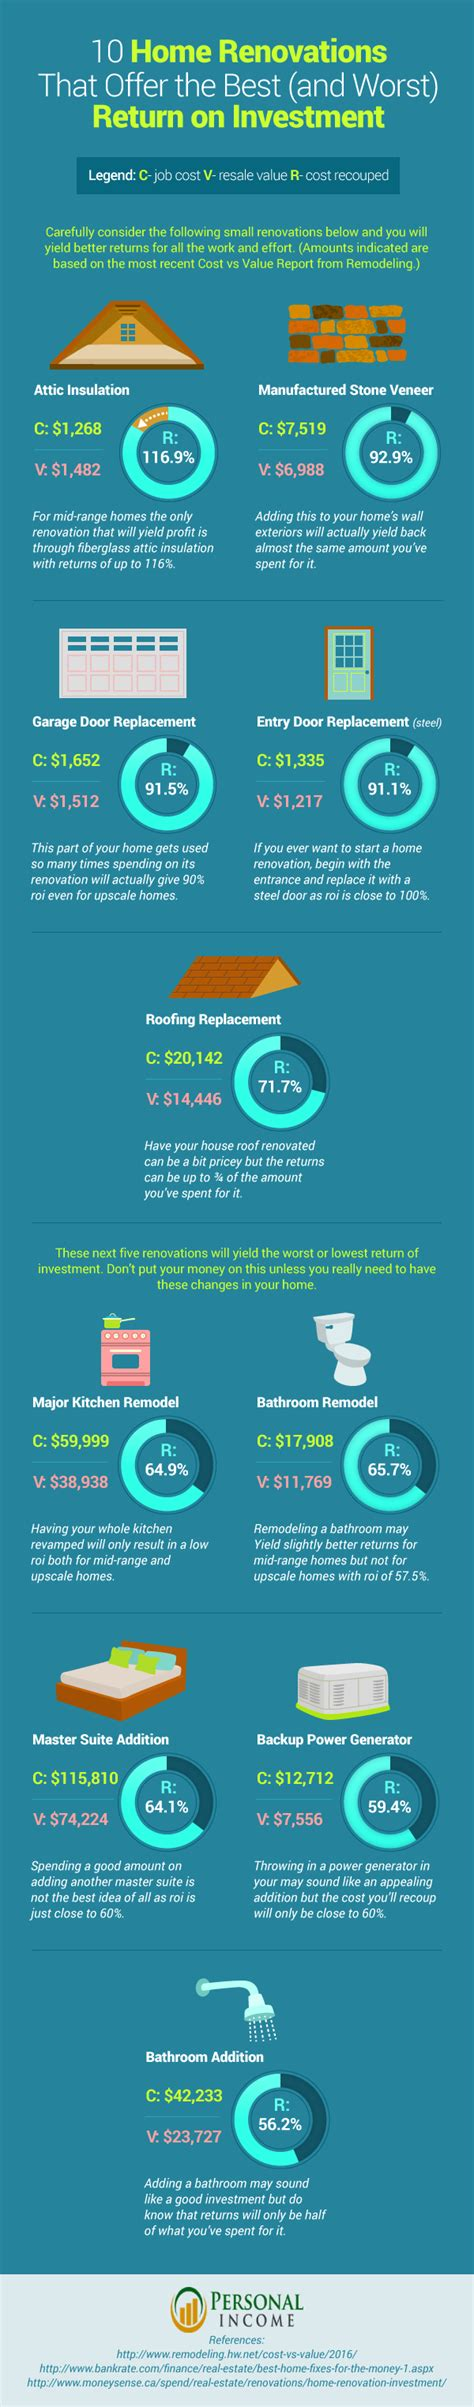 10 home renovations that offer the best return on investment